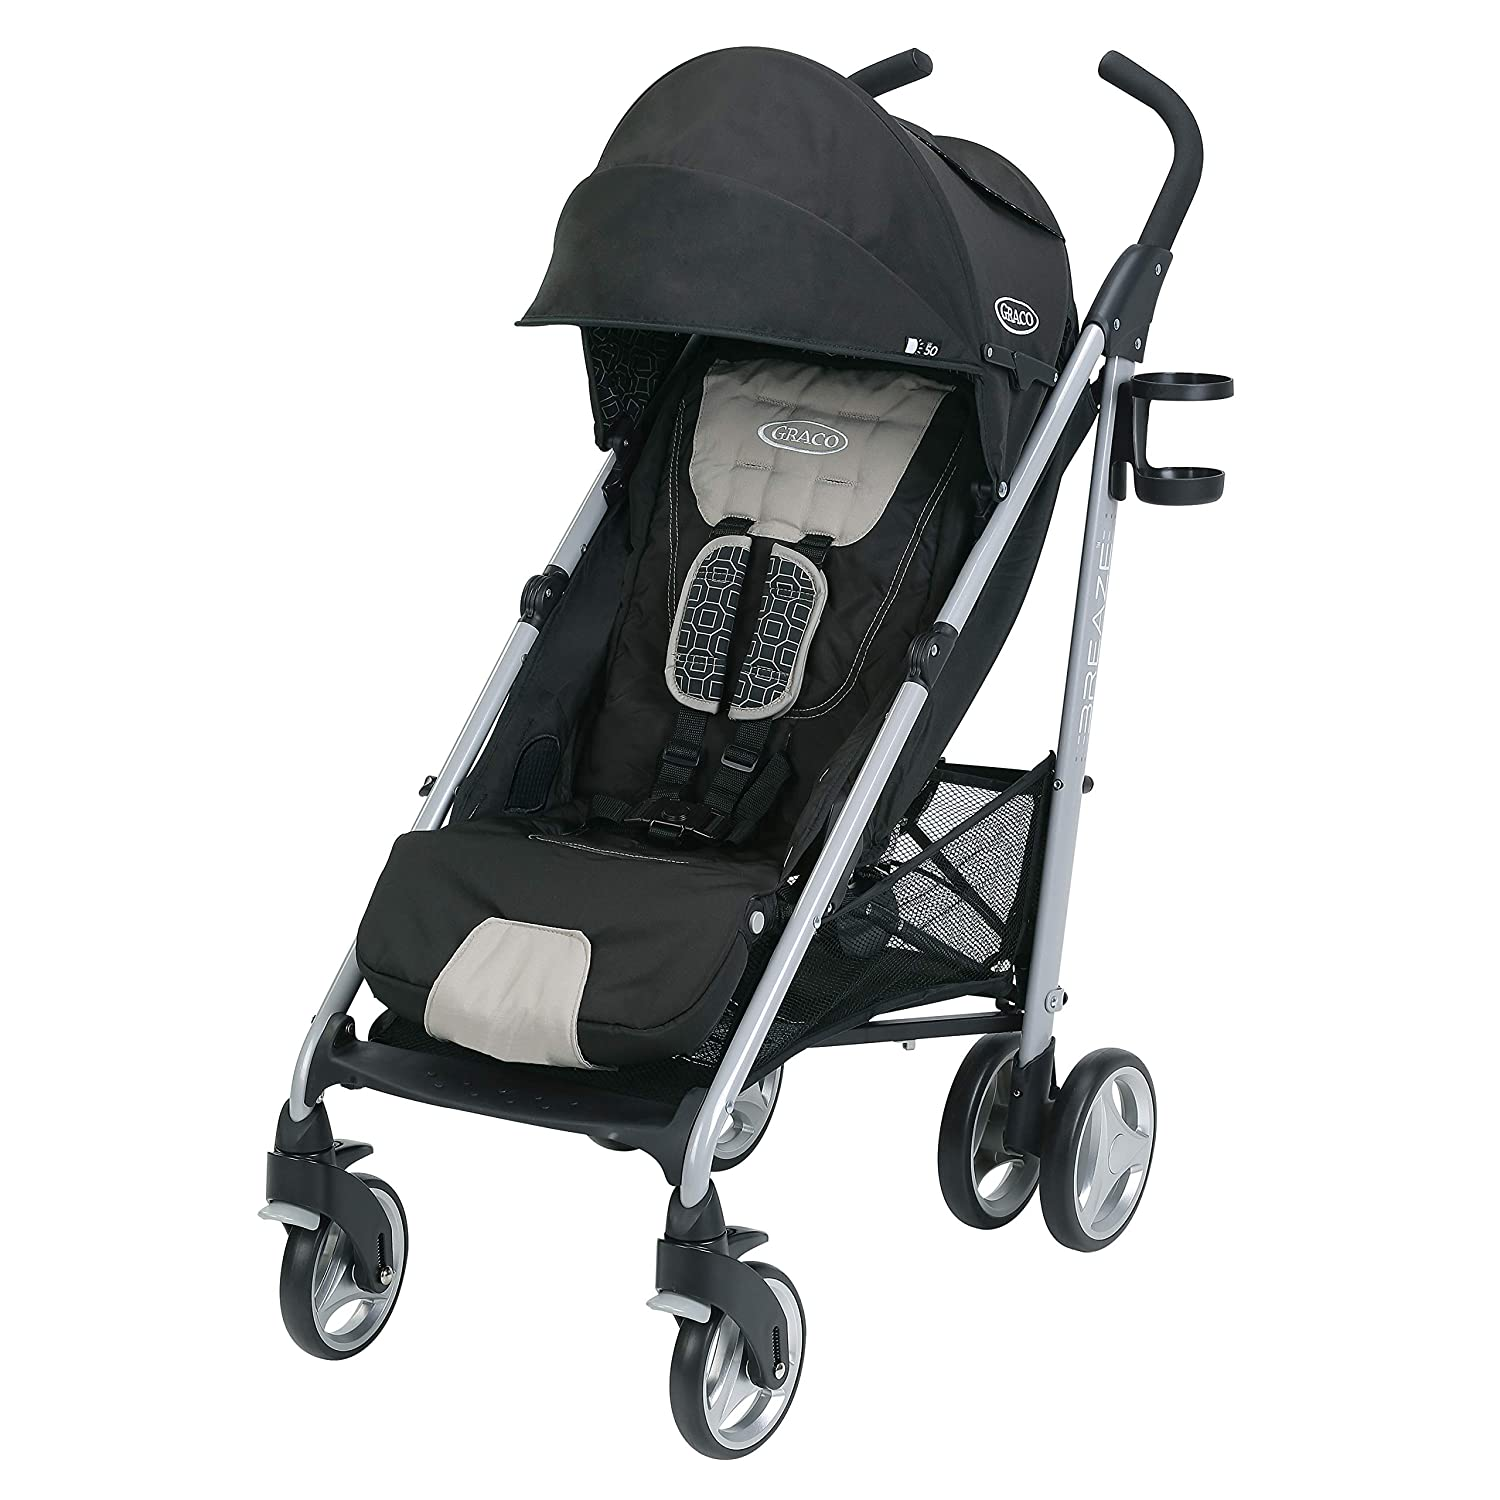 Top 6 Best Lightweight Umbrella Stroller (2020 Review & Buying Guide) 3